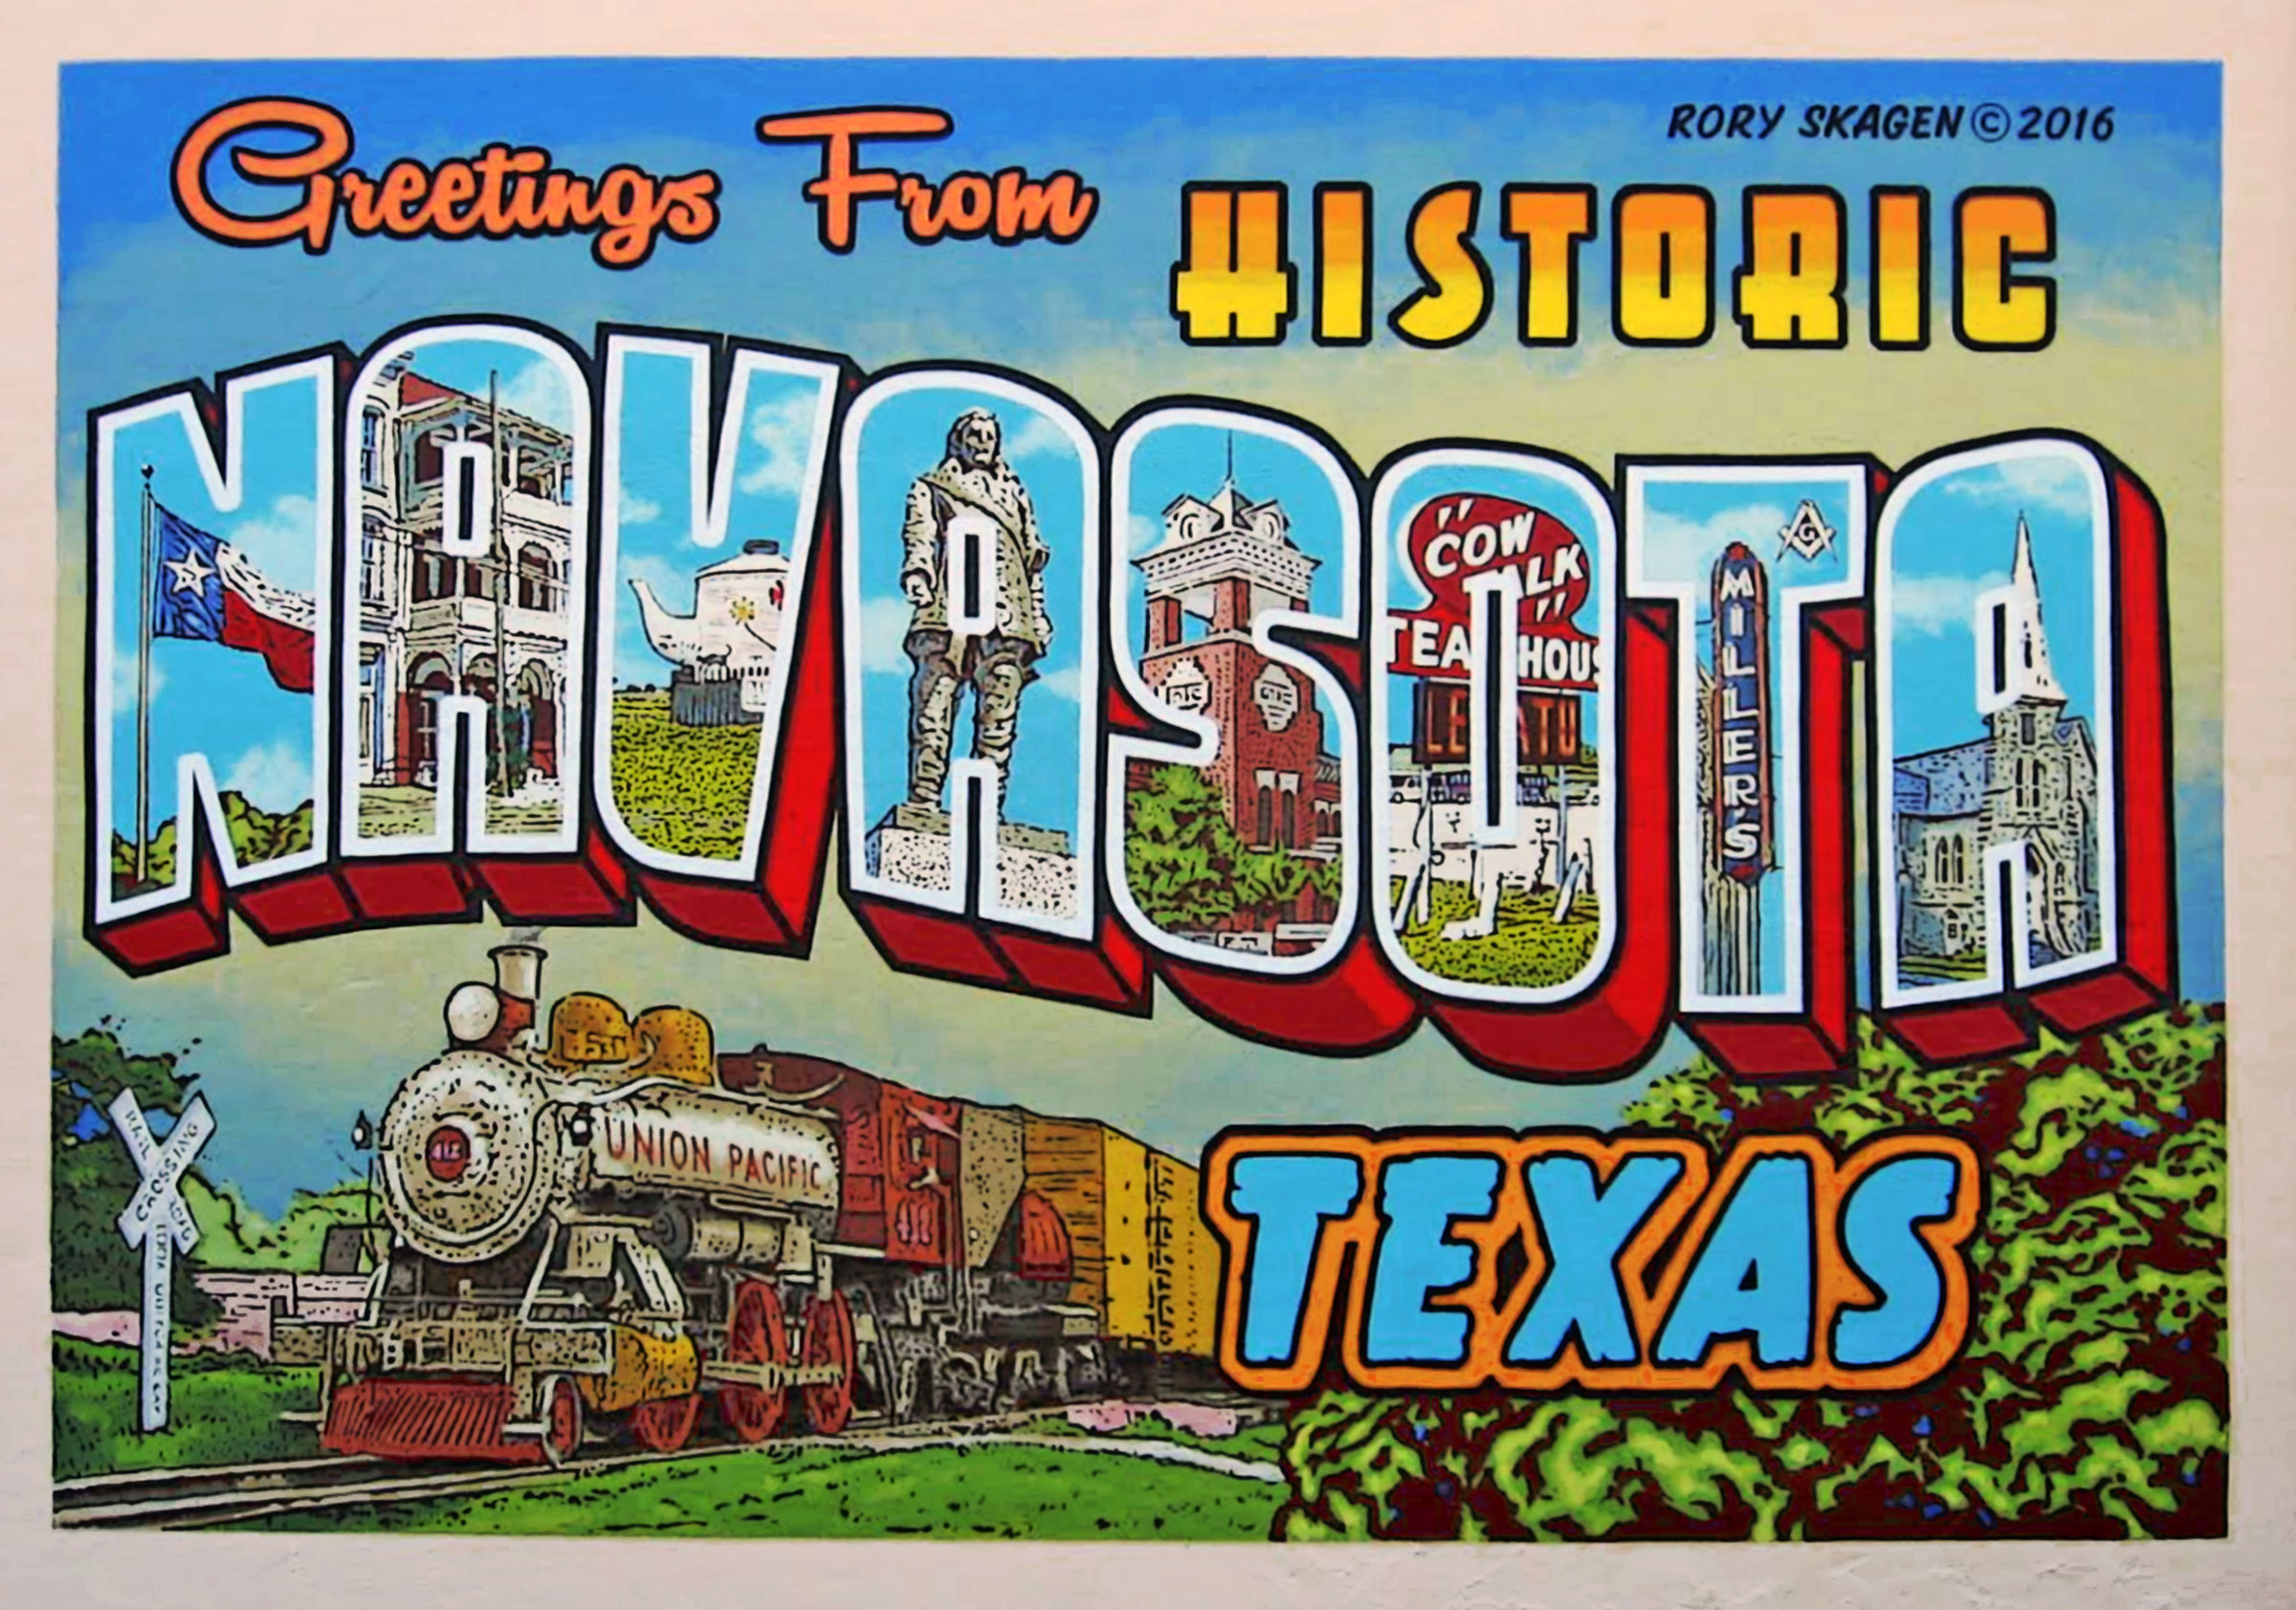 Greetings from navasota mural central texas murals by rory skagen murals1 kristyandbryce Choice Image